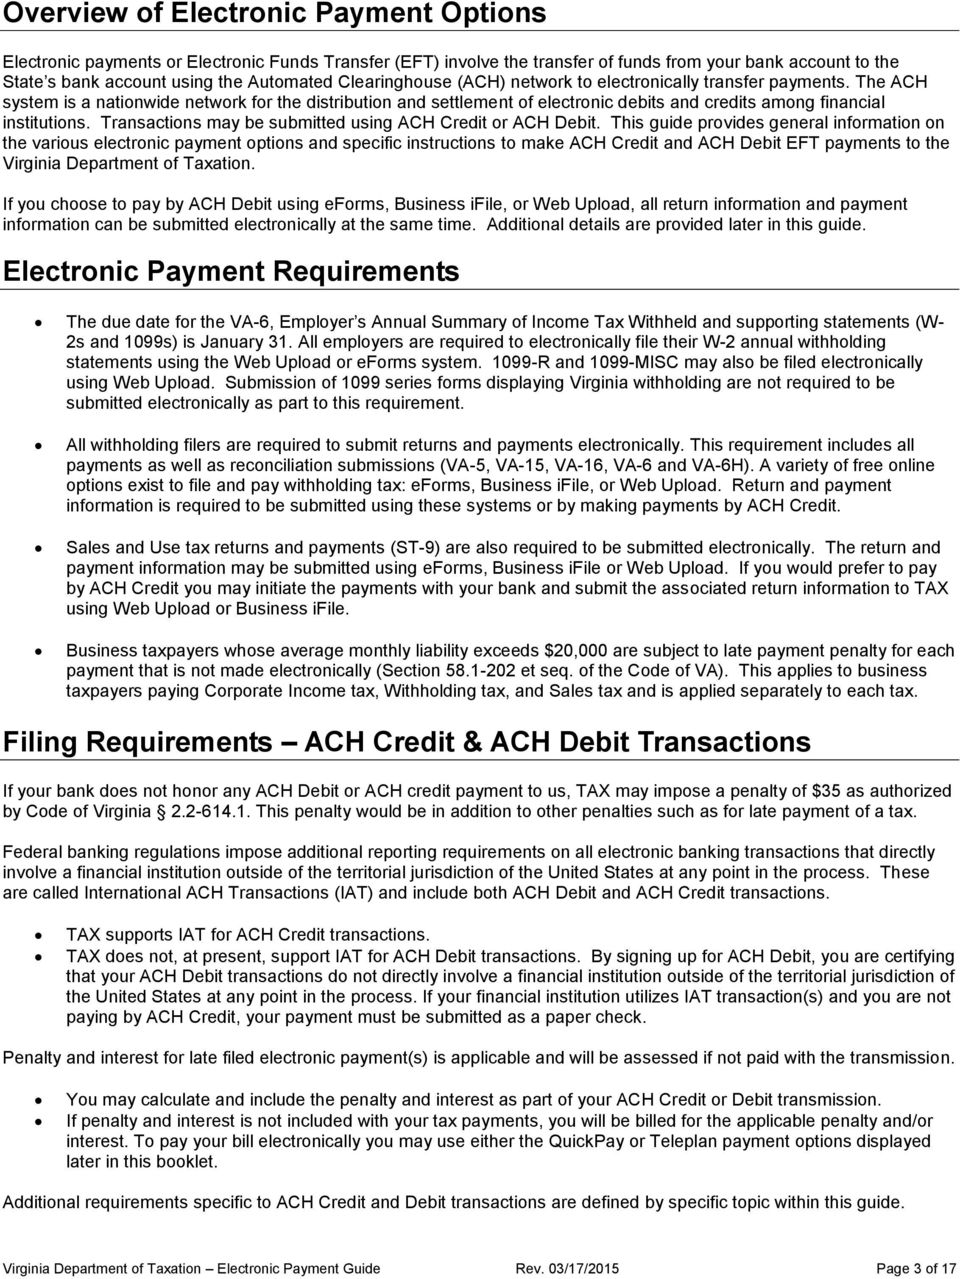 The ACH system is a nationwide network for the distribution and settlement of electronic debits and credits among financial institutions. Transactions may be submitted using ACH Credit or ACH Debit.